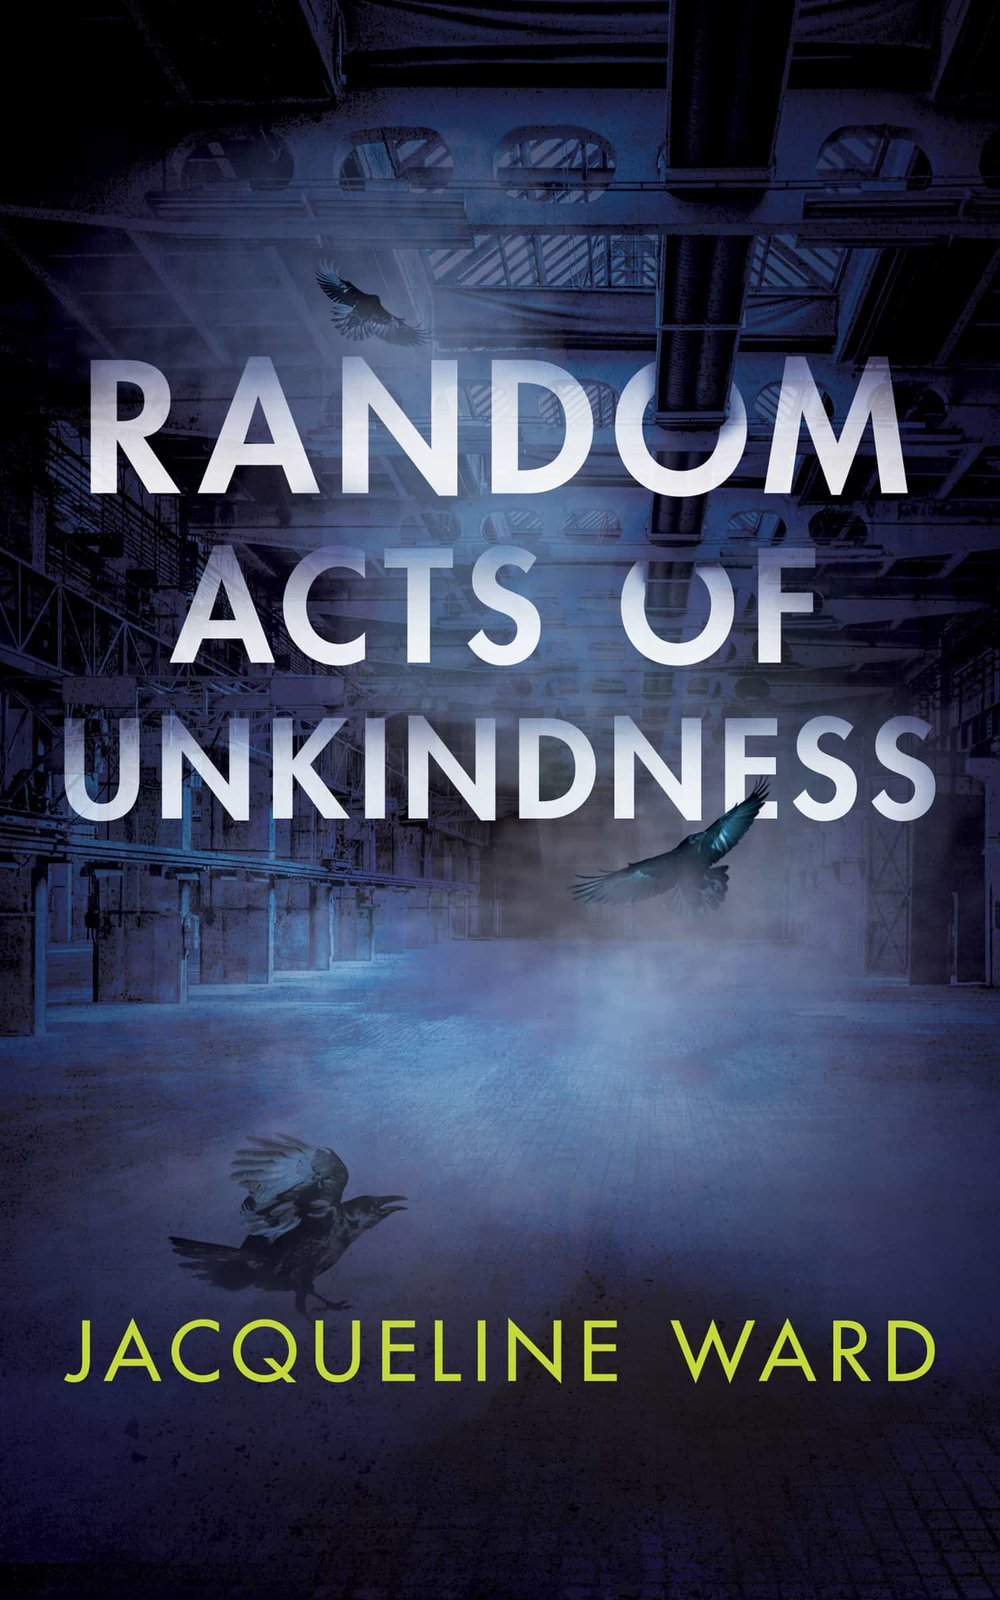 Random Acts of Unkidness - DS Jan Pearce has a big problem. Her fifteen year old son, Aiden, is missing. Jan draws together the threads of missing person cases spanning fifty years and finds tragic connections and unsolved questions.Bessy Swain, an elderly woman that Jan finds dead on her search for Aiden, and whose own son, Thomas, was also missing, may have the answers.Jan uses Bessy's information and her own skills and instinct to track down the missing boys.But is it too late for Aiden?Set in the North West of England, with the notorious Saddleworth Moor as a backdrop, Random Acts of Unkindness is a story about motherhood, love and loss and how families of missing people suffer the consequences of major crimes involving their loved ones